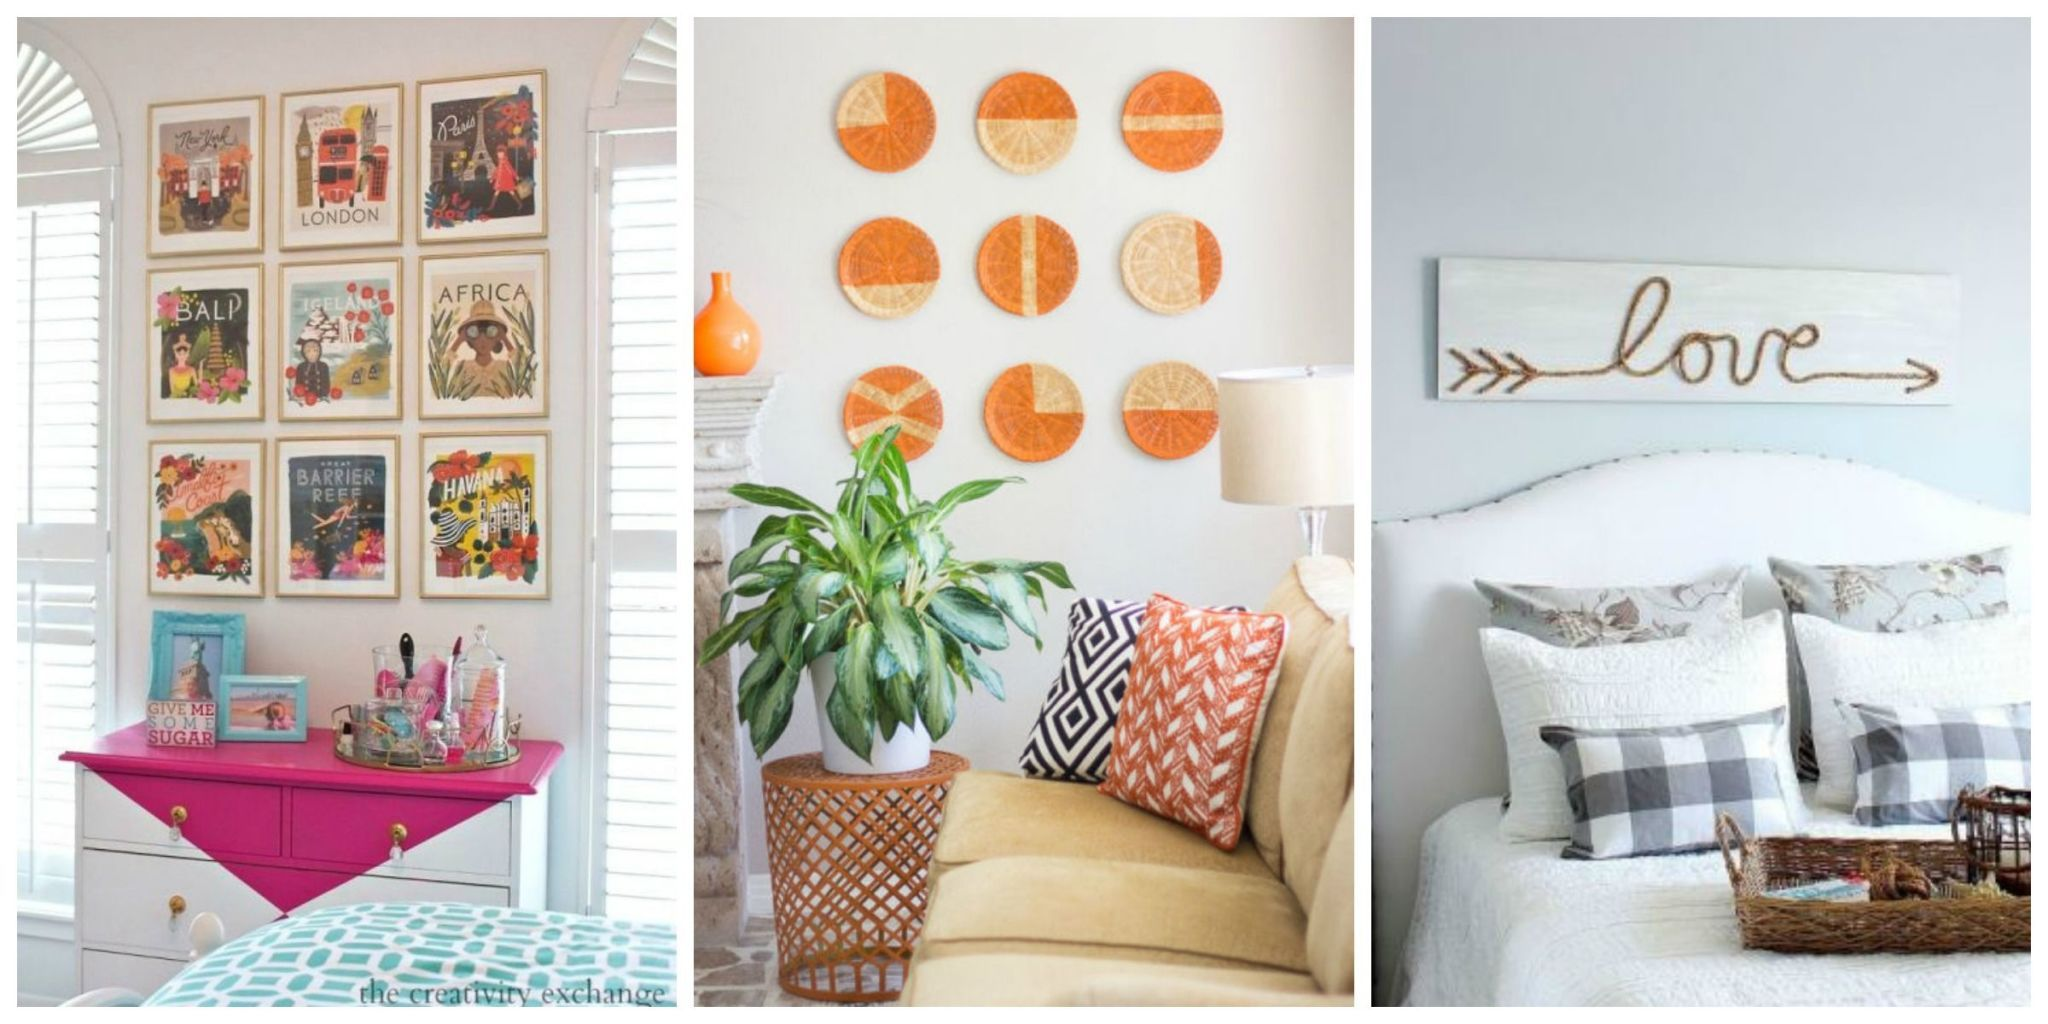 Amazing Give Any Room A Fresh Look With These Simple Projects For Personalized Wall  Art.